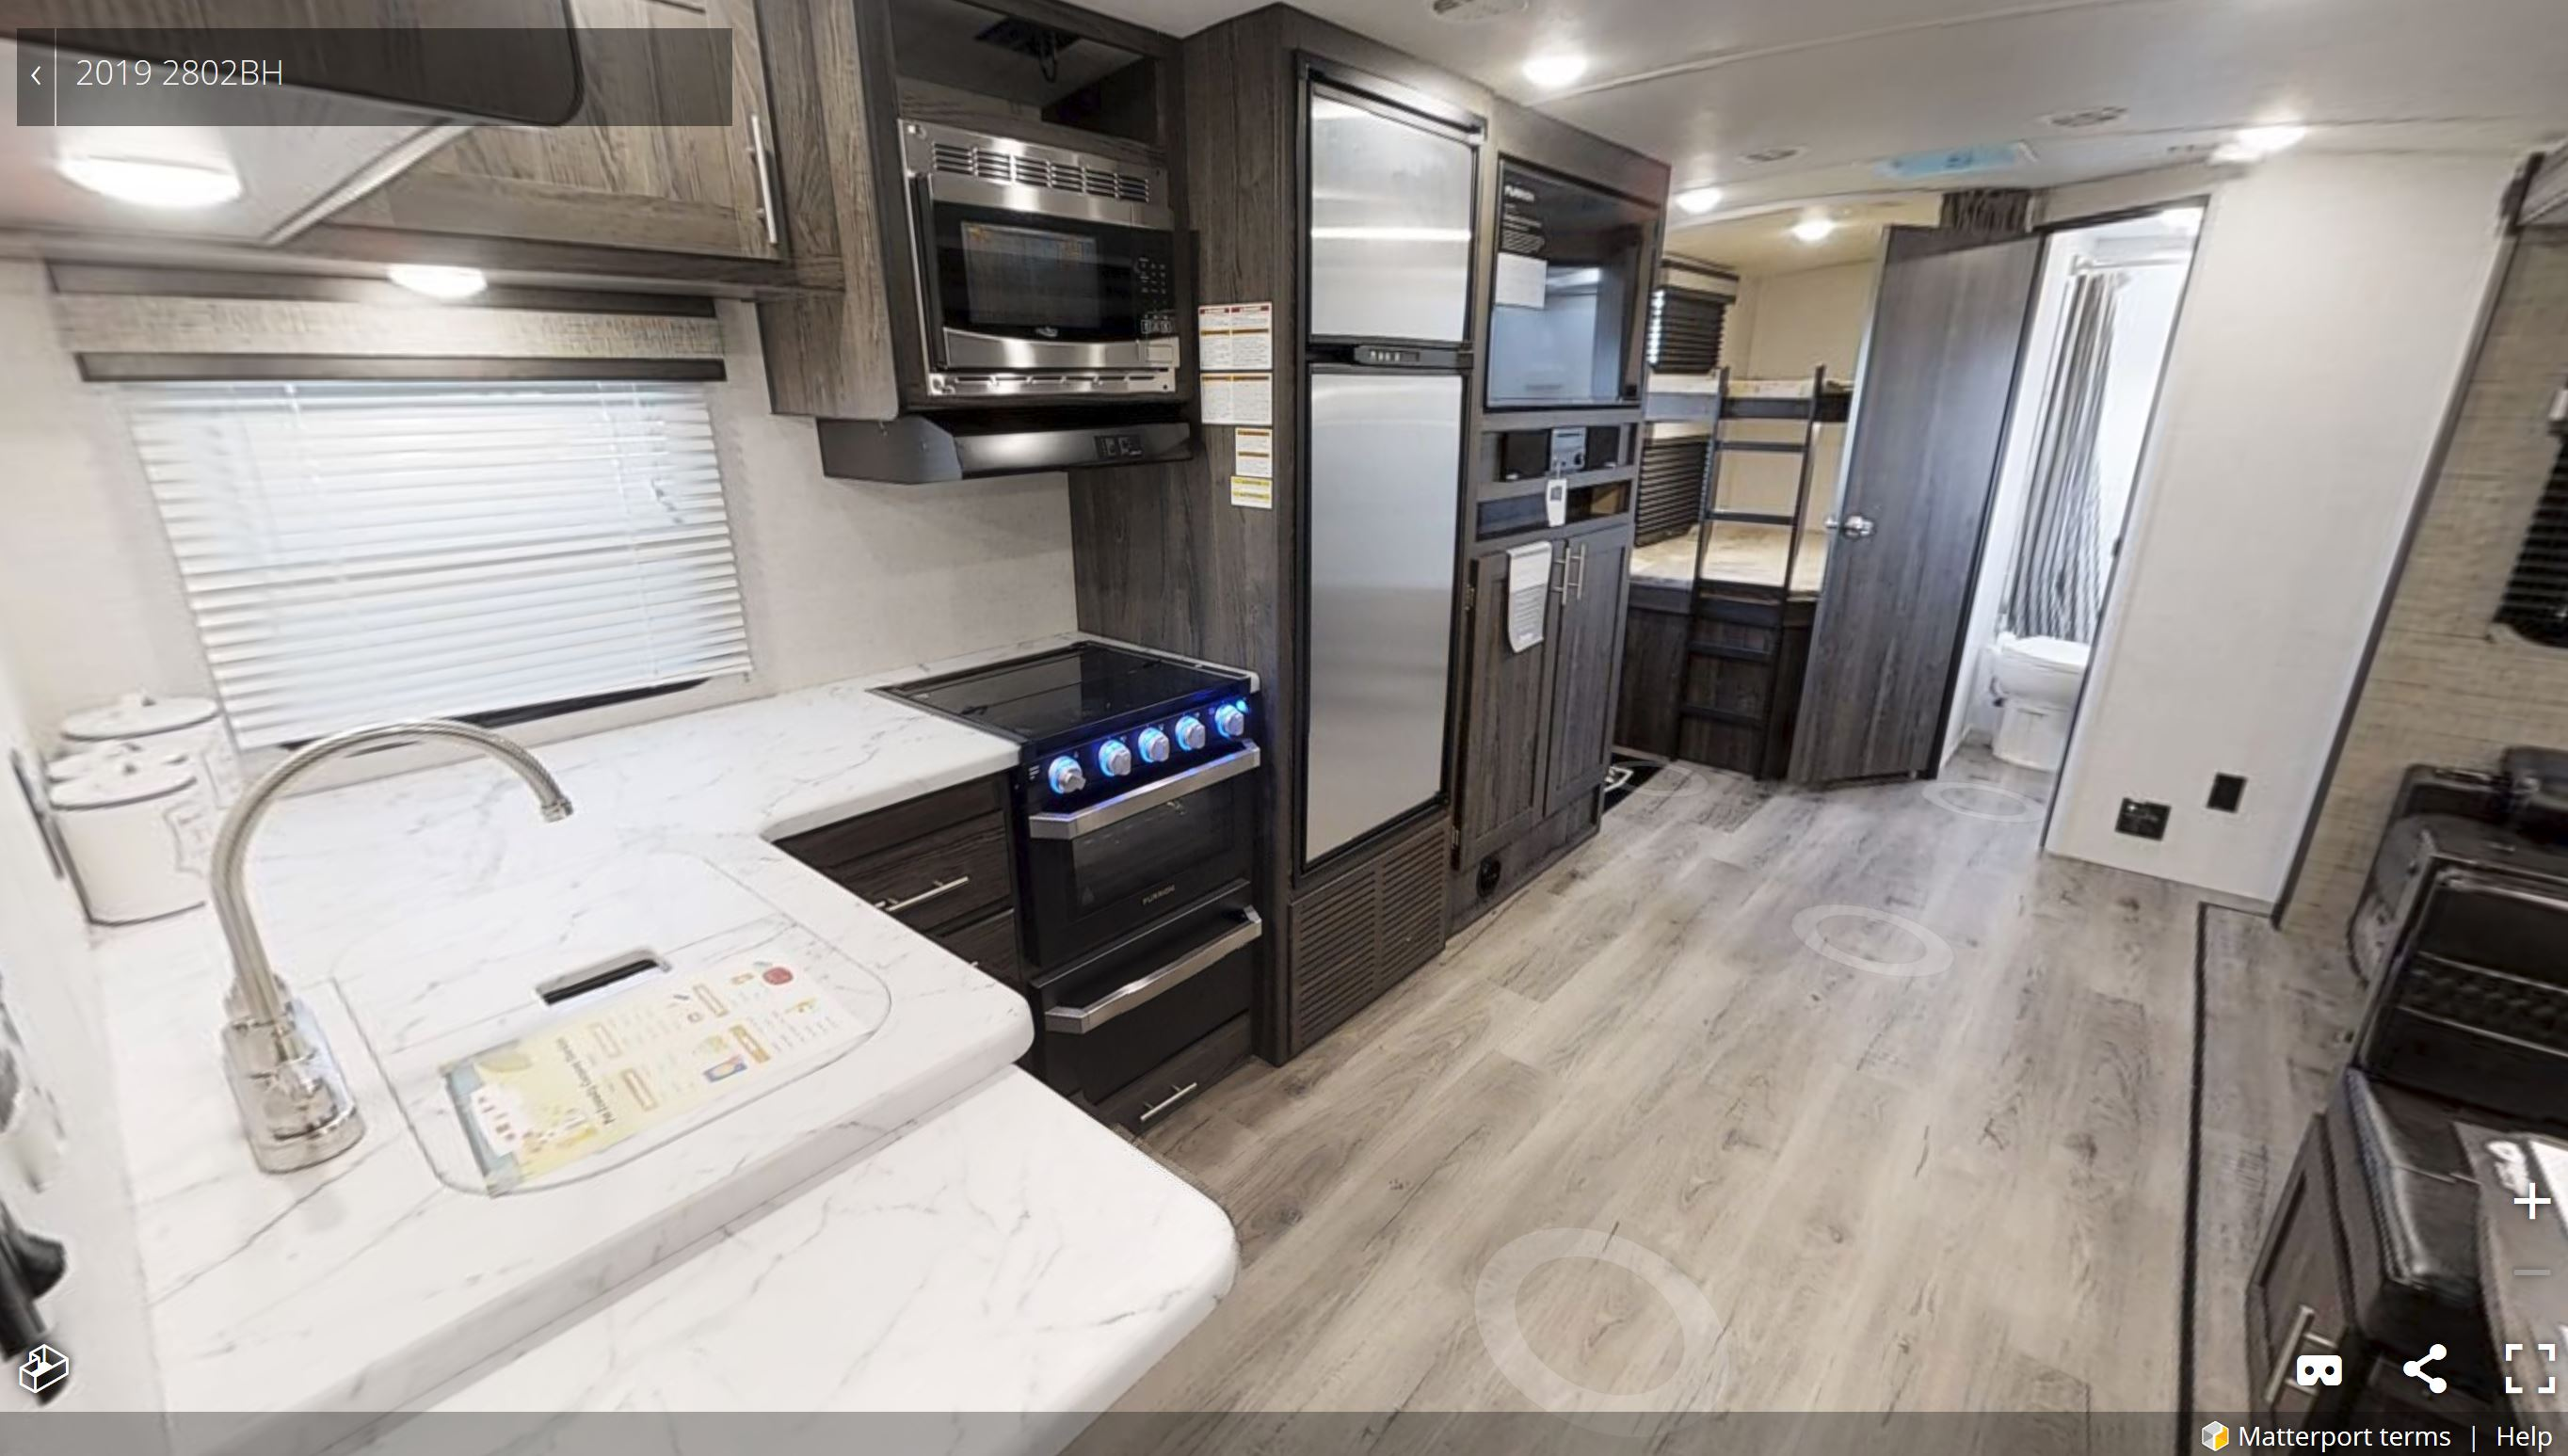 Spacious kitchen, luxury RV appliances, large fridge & freezer.